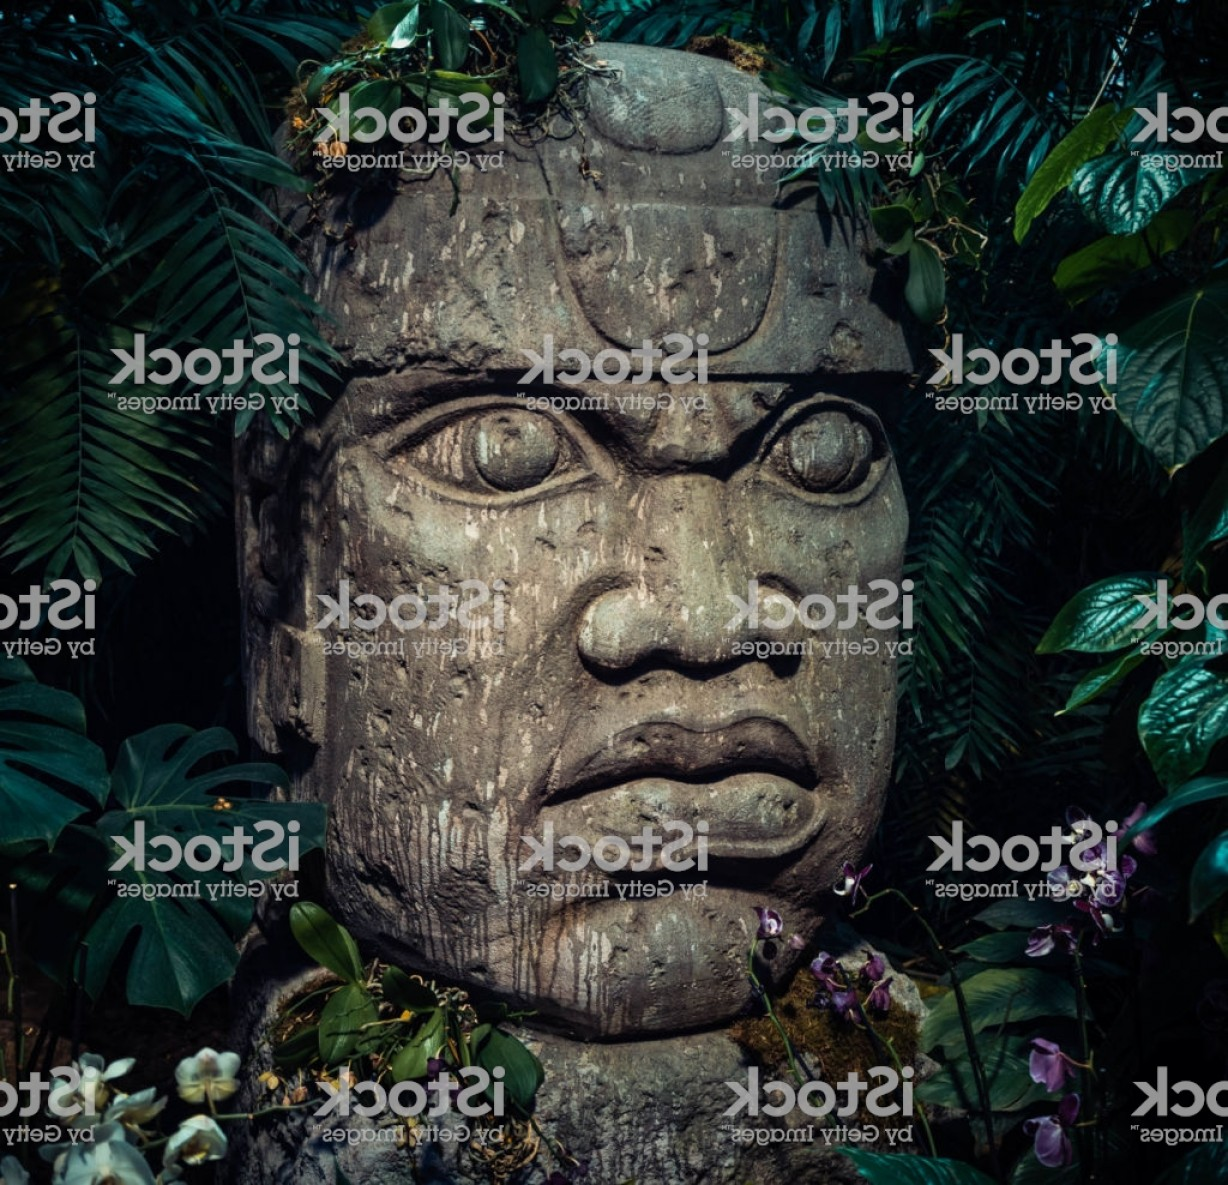 Ancient Jungle Statue Vector Images: Olmec Sculpture Carved From Stone Big Stone Head Statue In A Jungle Gm